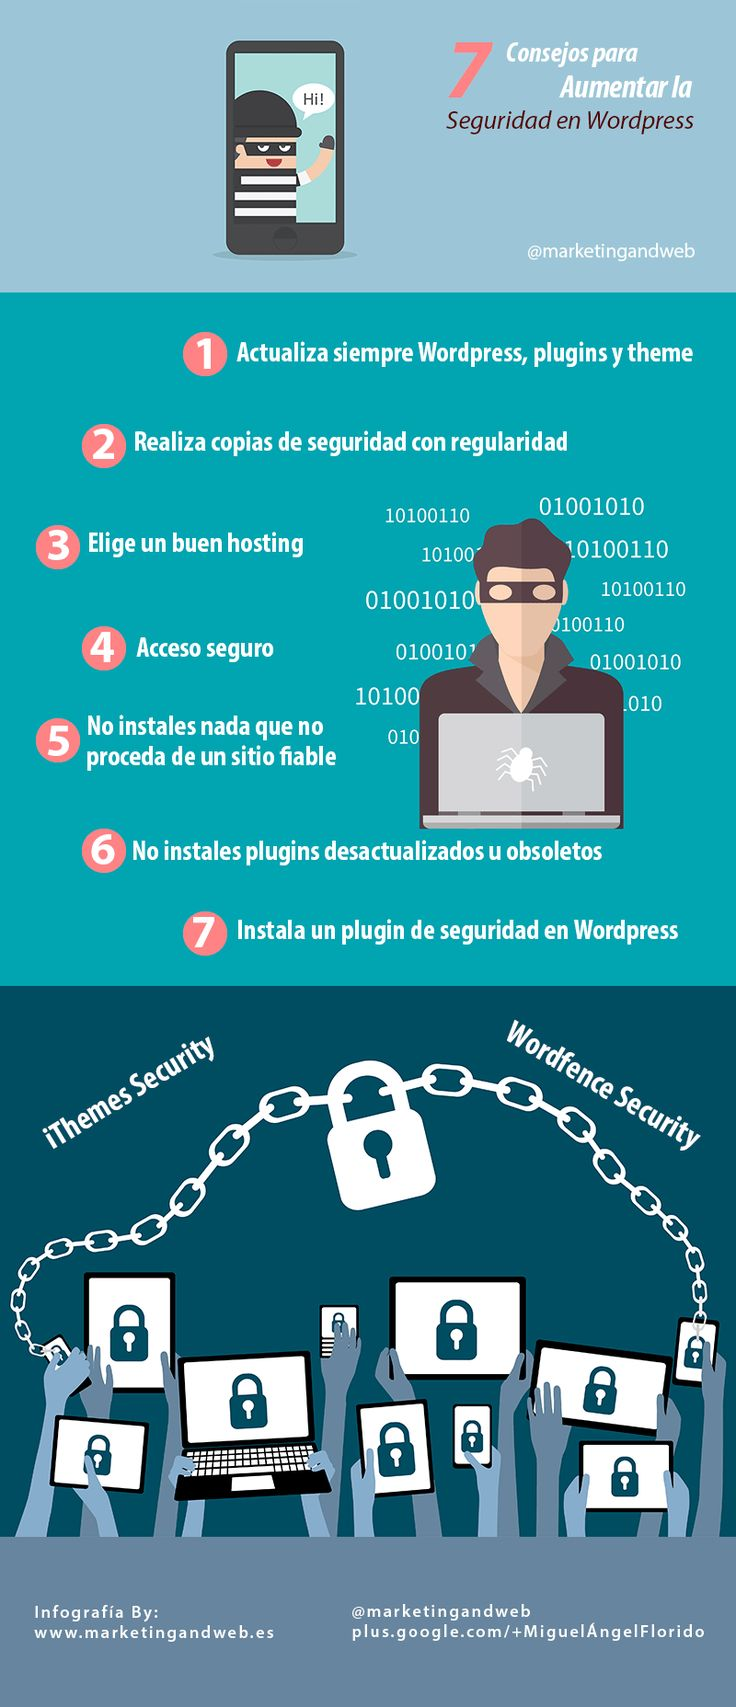 #Infografia 7 consejos para aumentar la seguridad en #WordPress by @marketingandweb